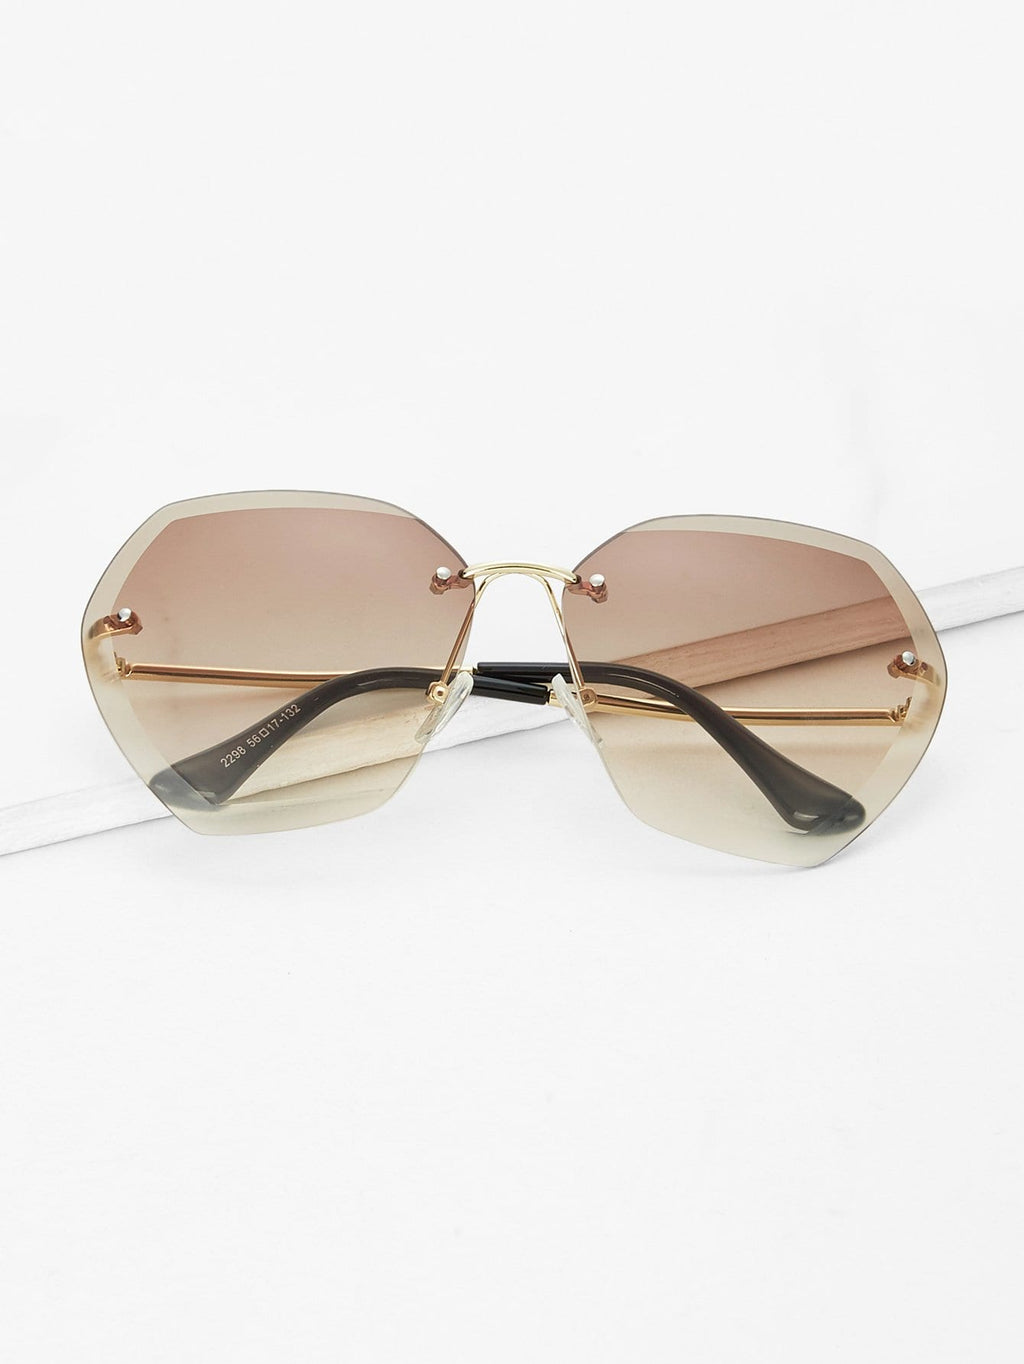 Sunglasses For Women - Rimless Oversized Sunglasses